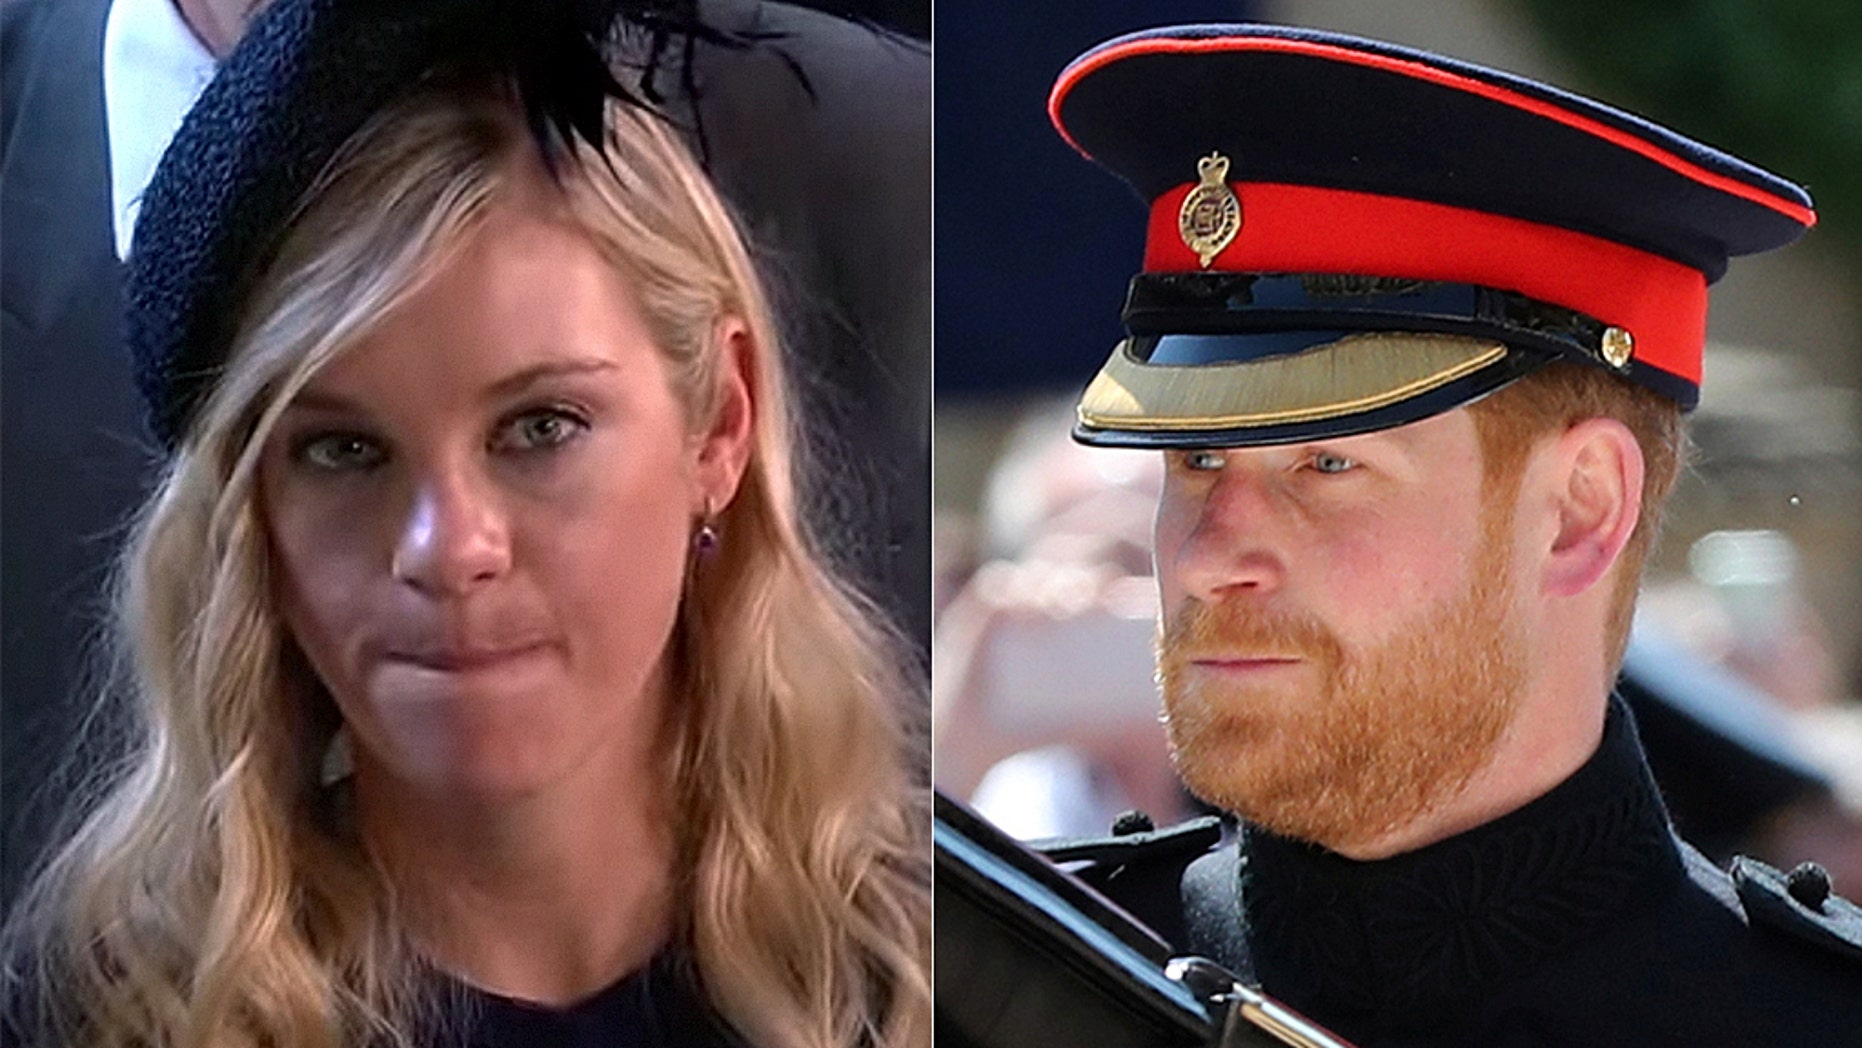 Prince Harry Ex Girlfriend Wedding.Prince Harry And Ex Girlfriend Chelsy Davy Had An Emotional Call